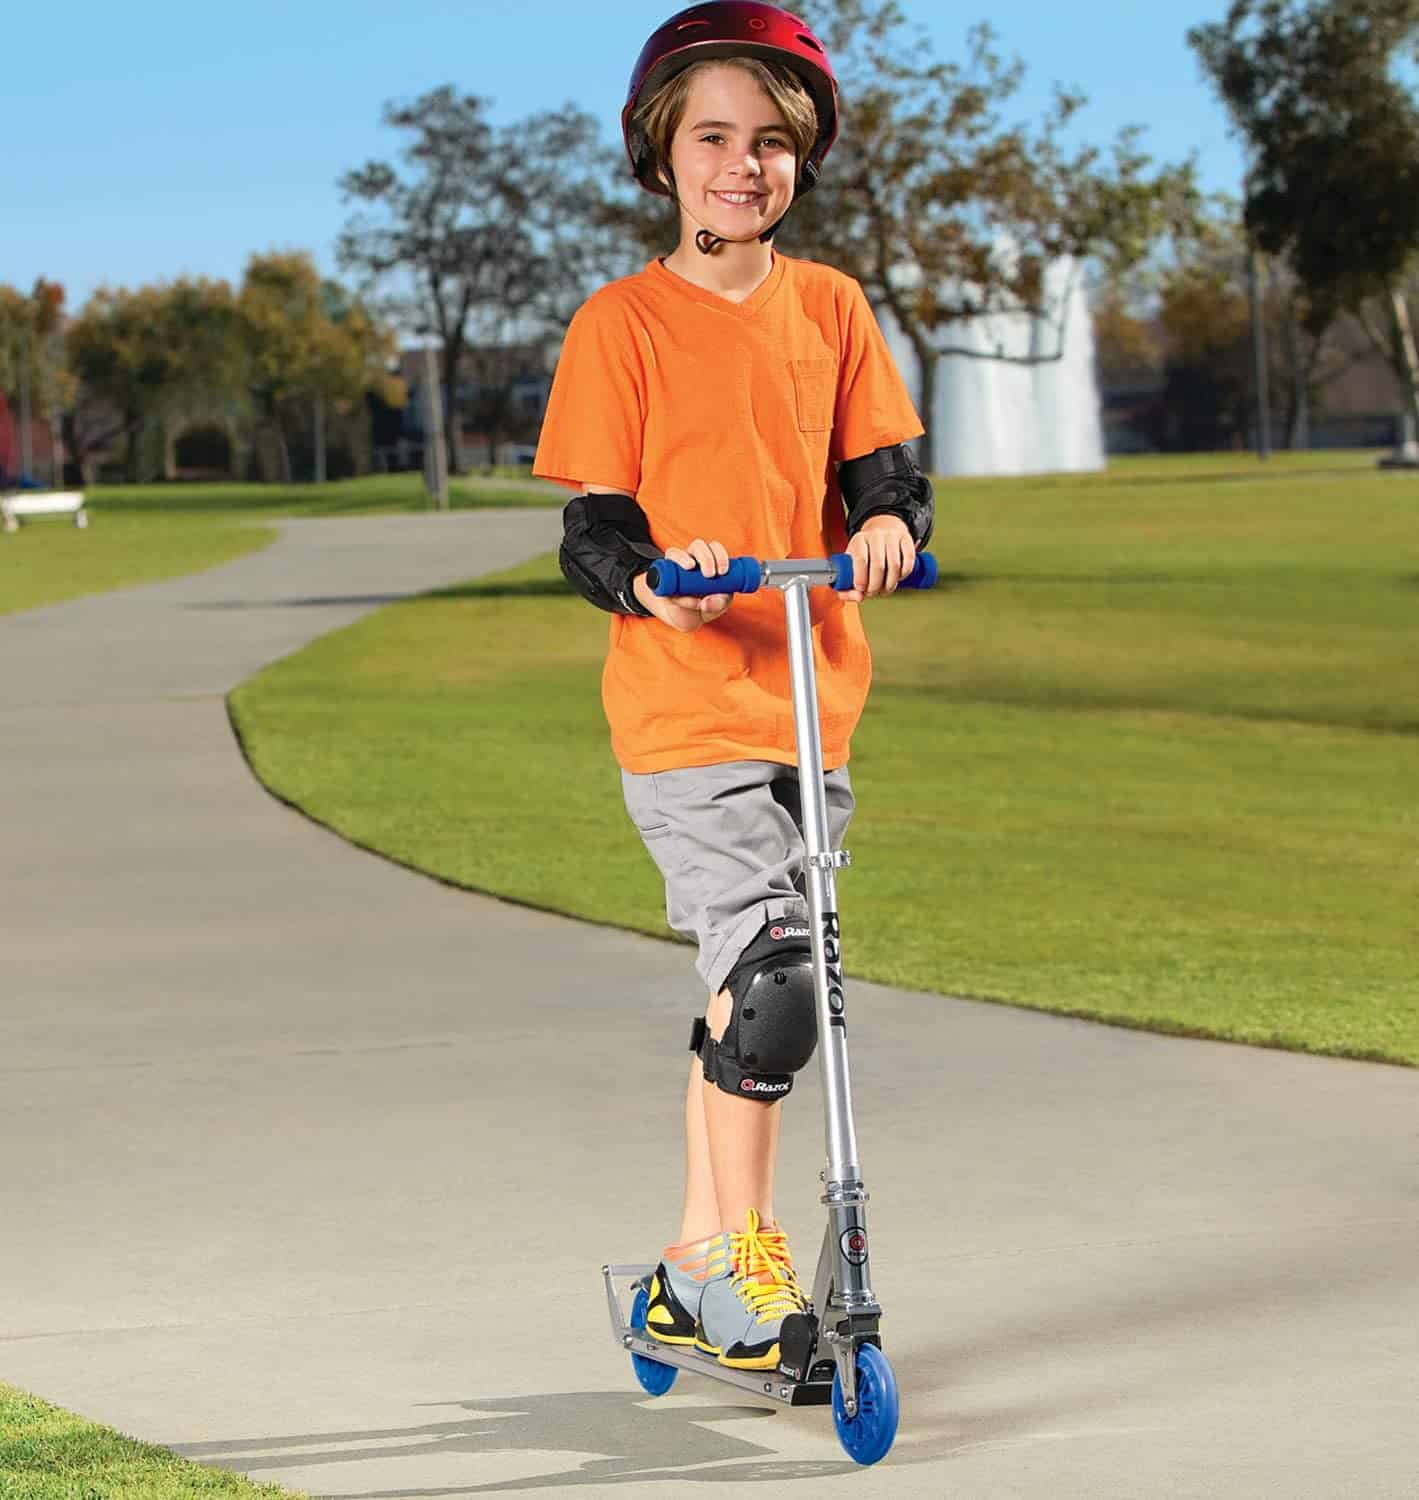 Best kids scooter for 5 year old child- Razor A3 Kick Scooter